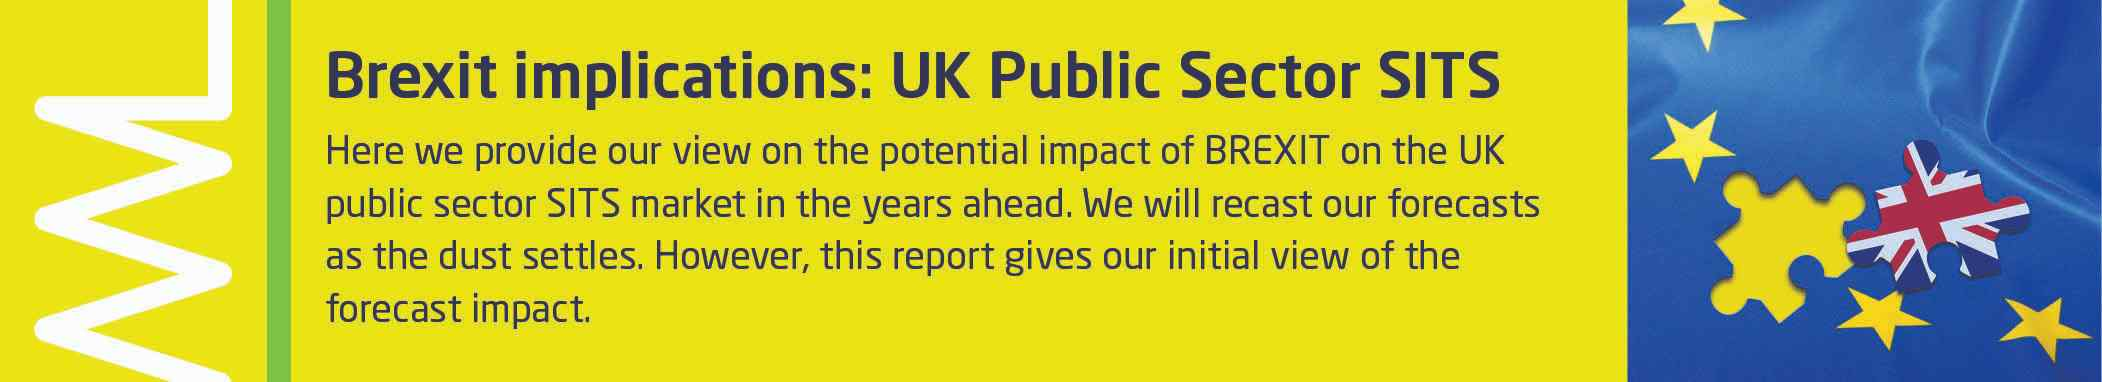 Brexit Implications for UK Public Sector SITS